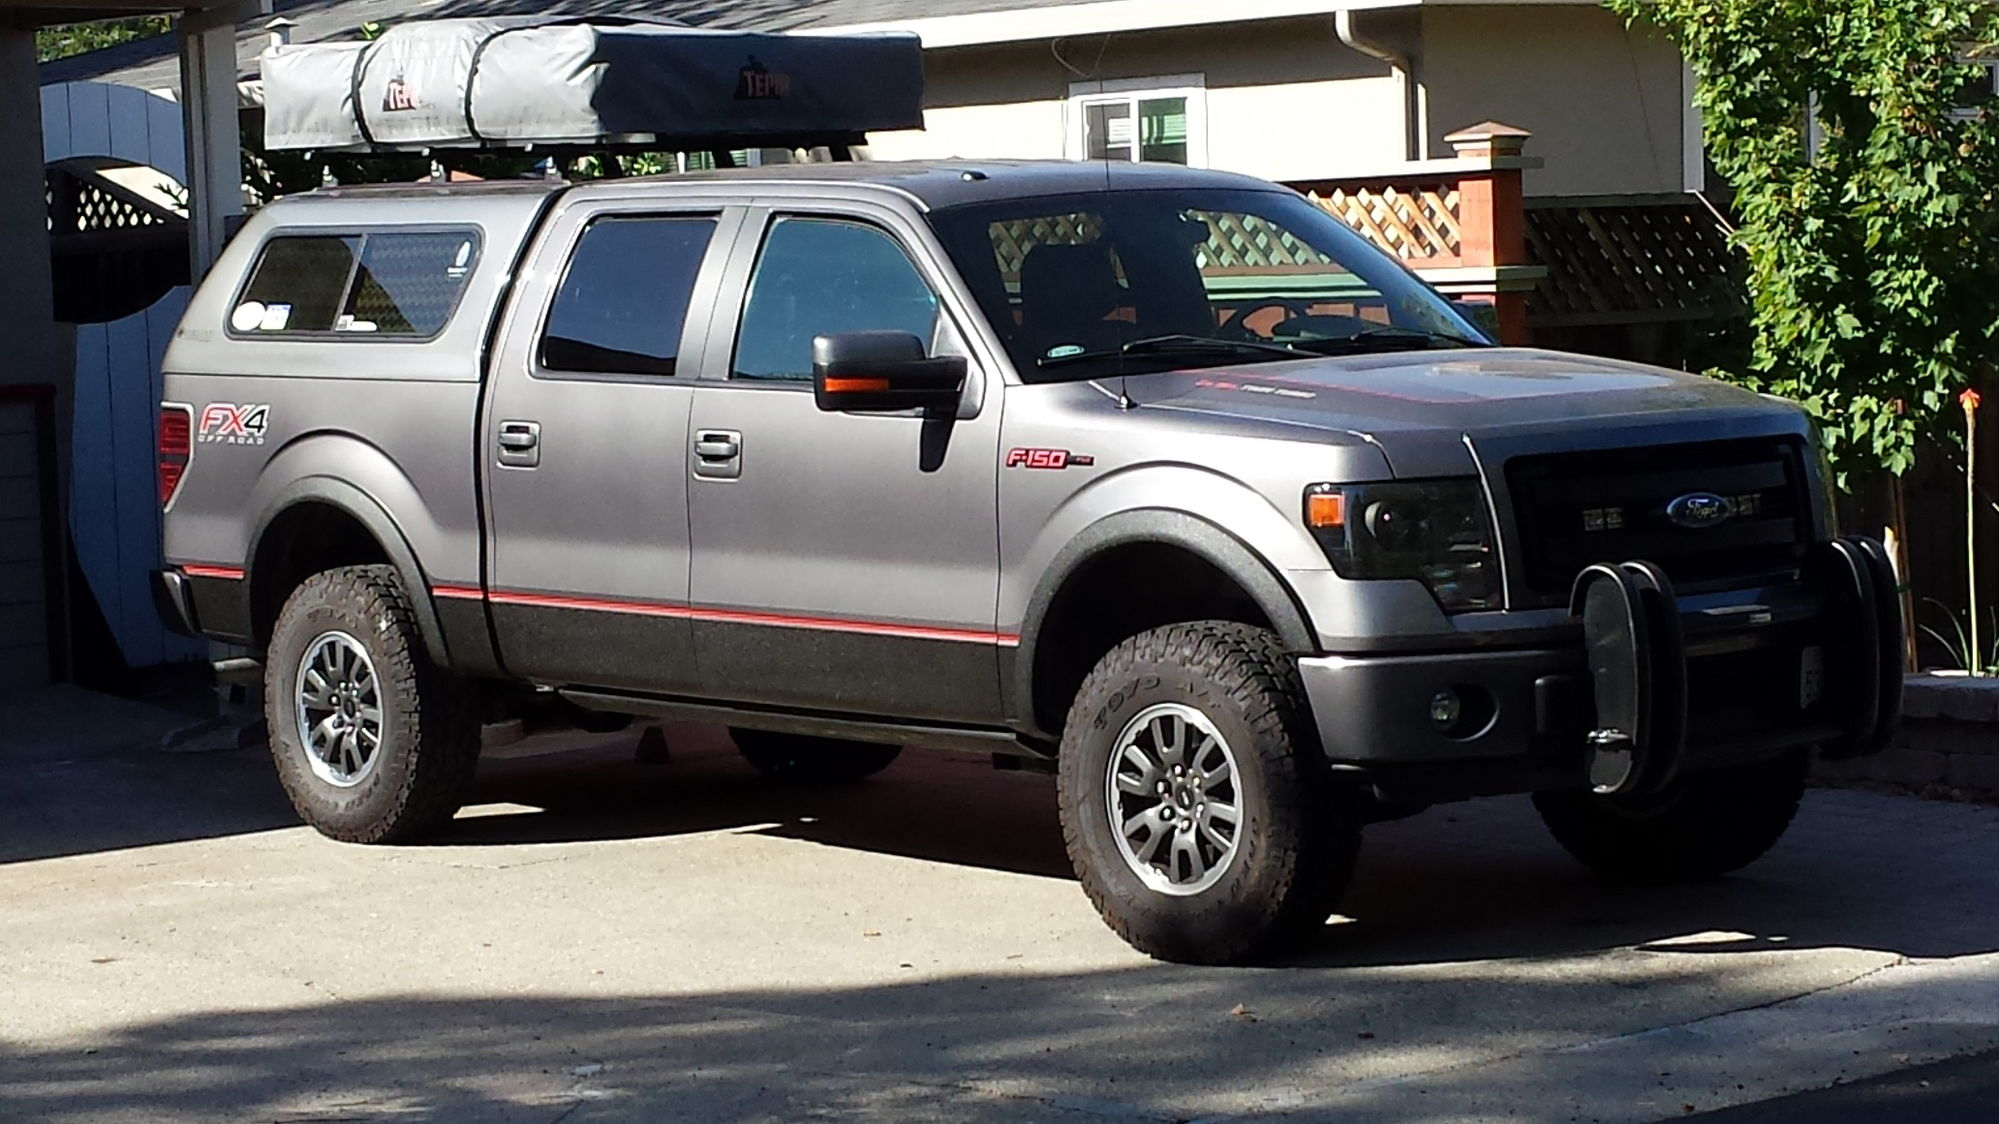 2012 Ford Raptor For Sale >> Two Tone Color Scheme Pictures - Page 3 - Ford F150 Forum ...